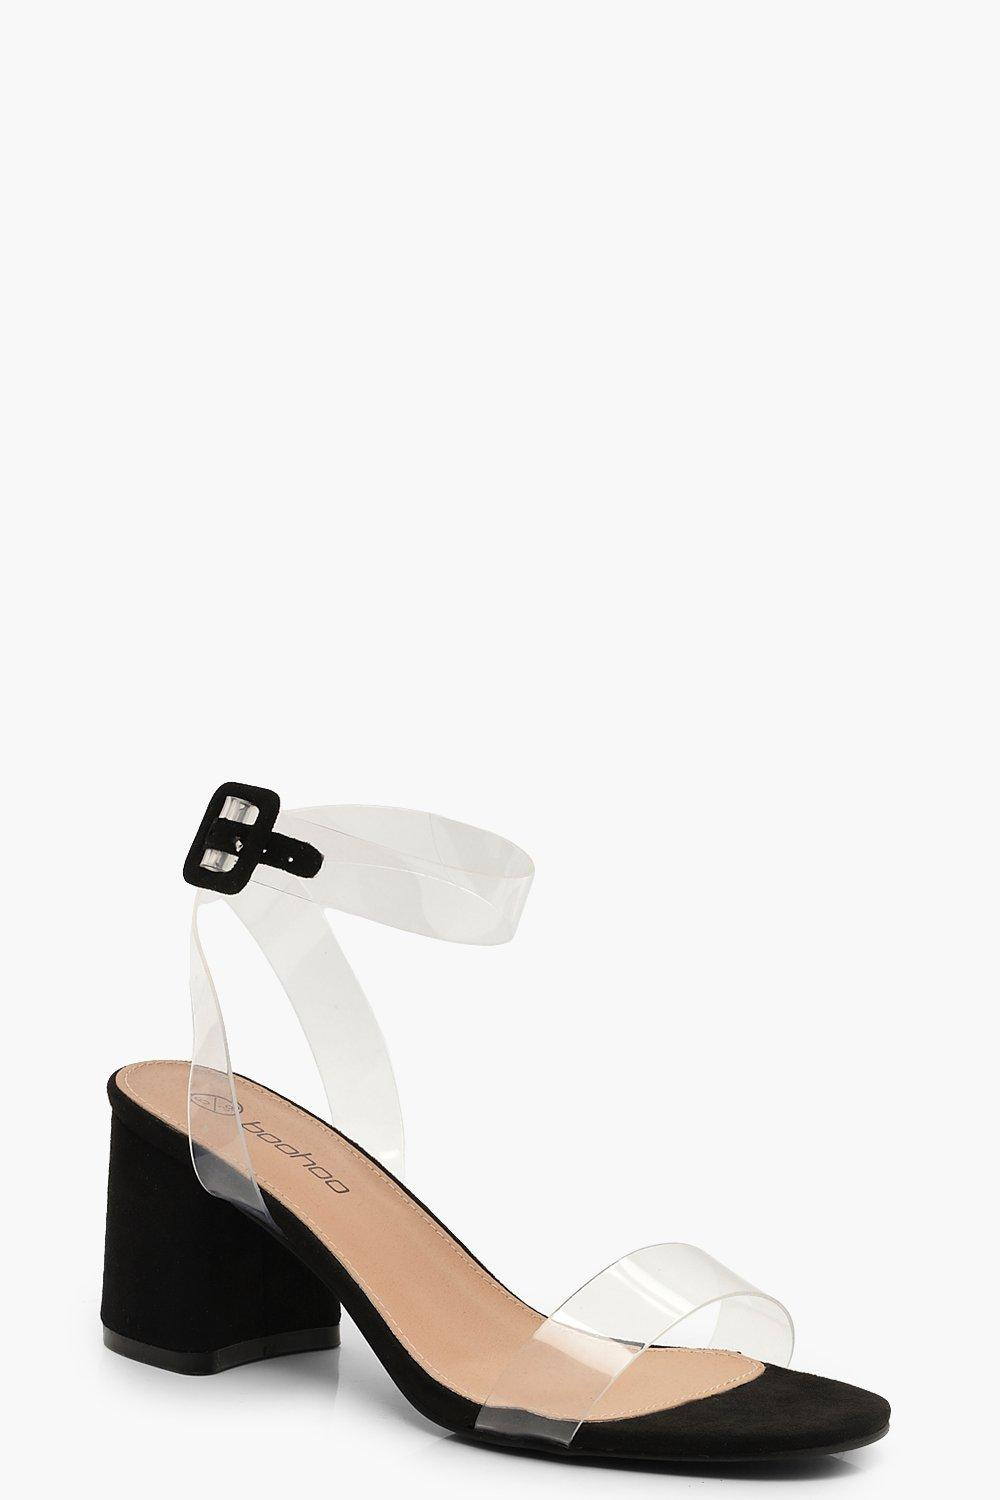 0b524427b2a1 Details about NEW Boohoo Womens Wide Fit Clear Strap 2 Part Block Heels in